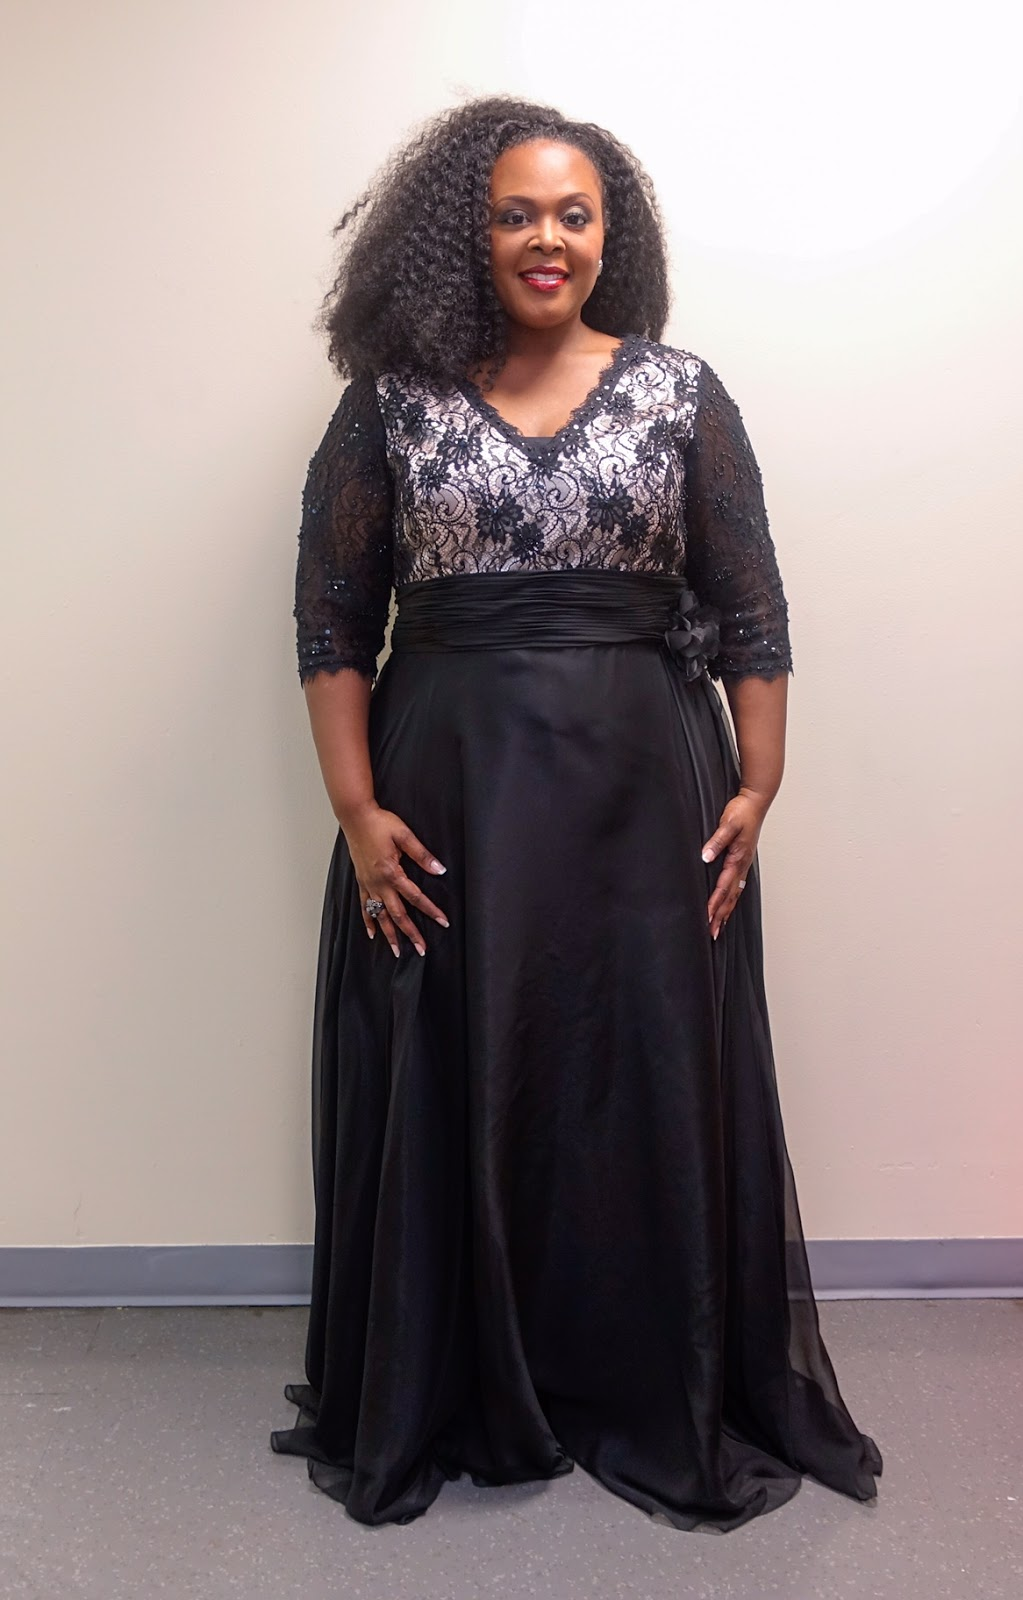 sydneys closet dress, sydneys closet black gown, sydneys closet nina gown, plus size black gown, plus size black evening gown, plus size evening wear